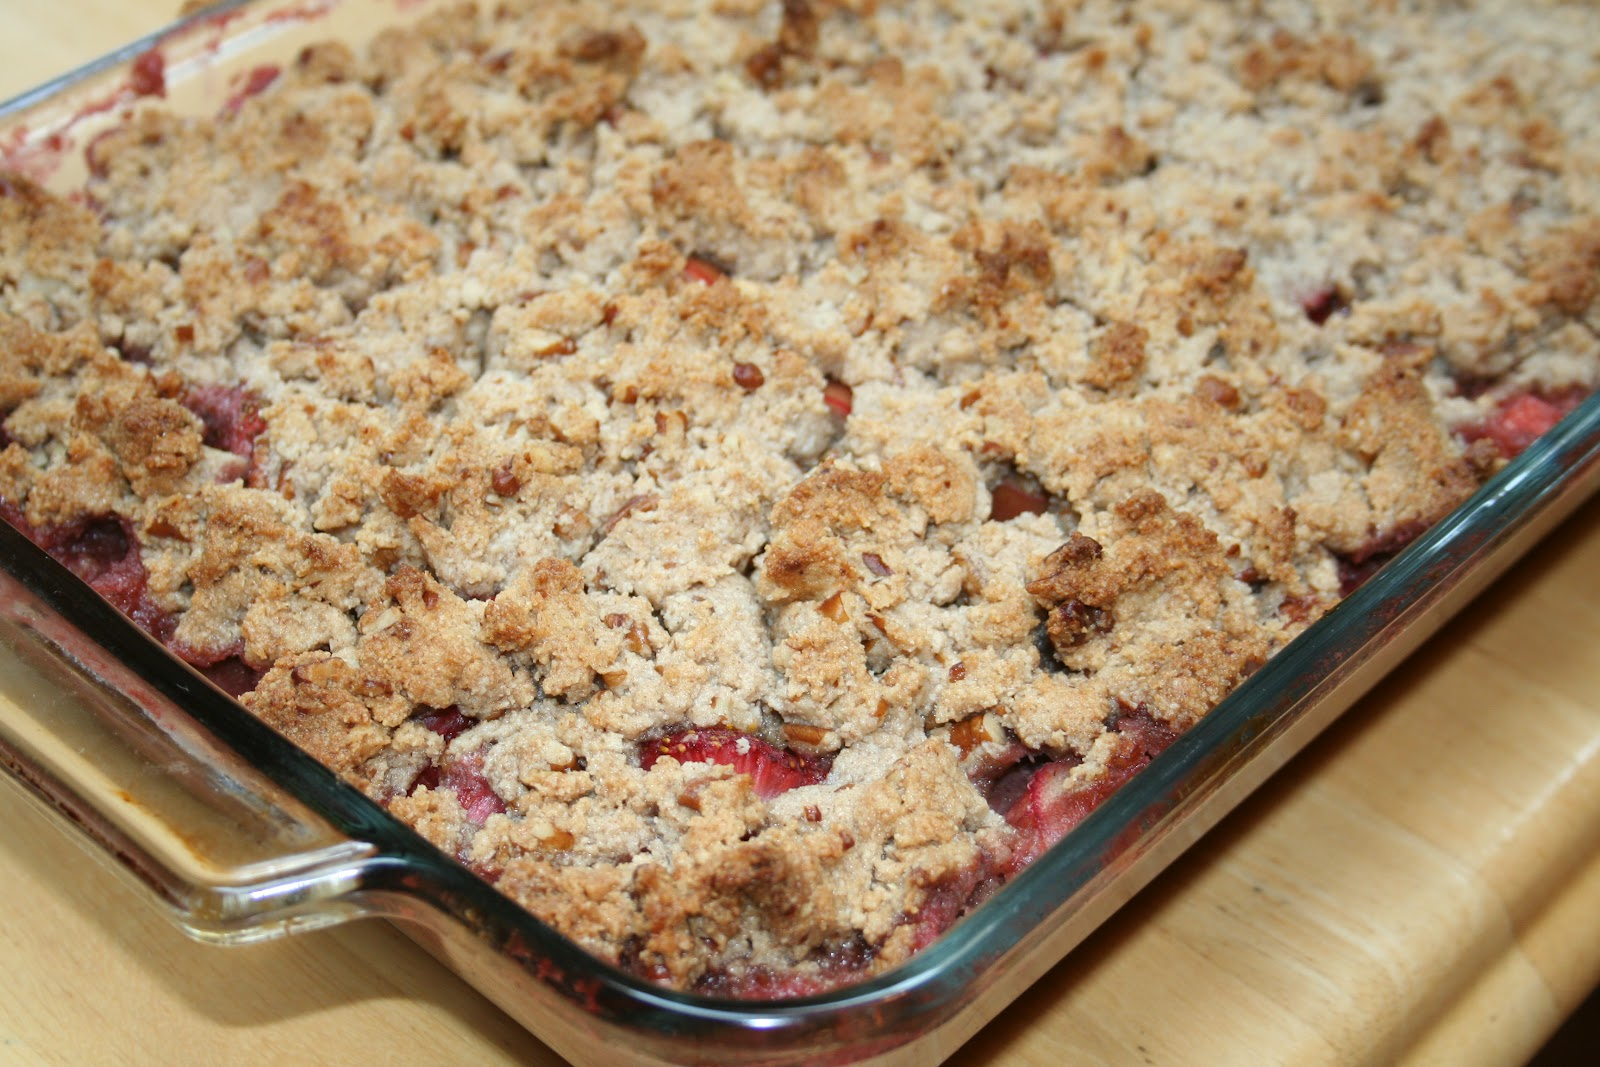 Budget Paleo...Made Easy: Grain Free/Paleo Strawberry Rhubarb Crisp